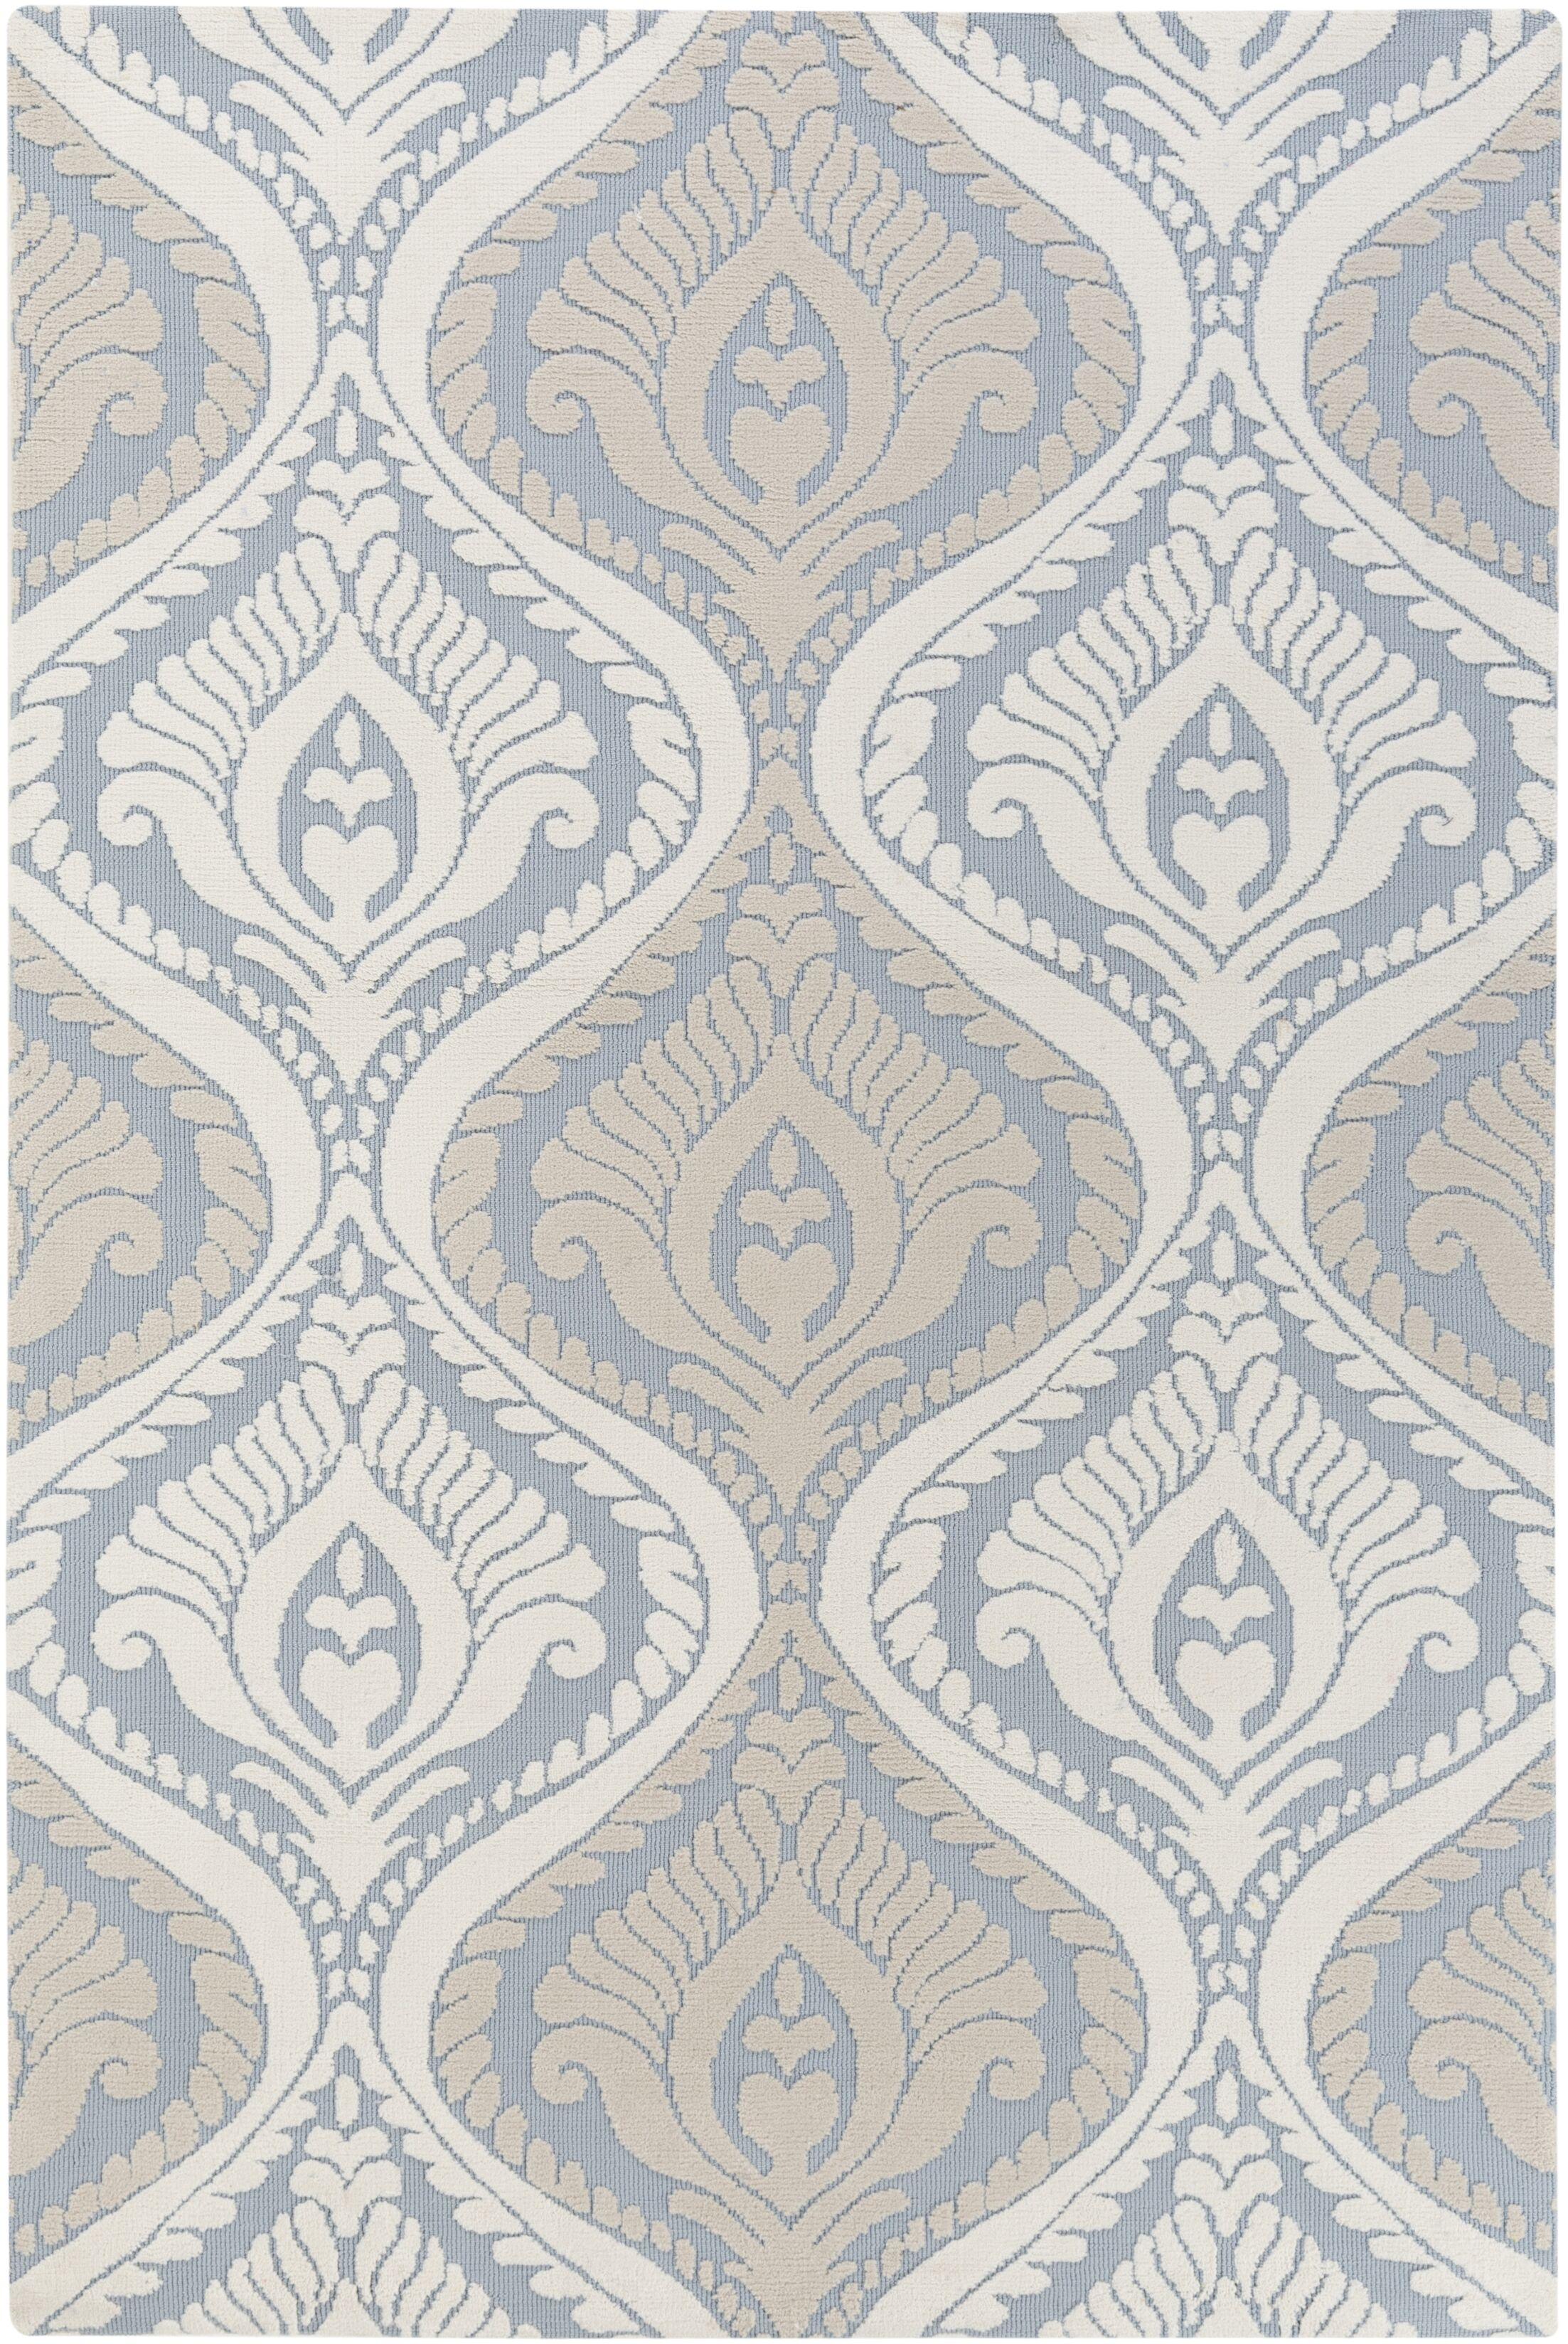 Mangus Light Blue/ Ivory Area Rug Rug Size: Rectangle 5' x 7'6